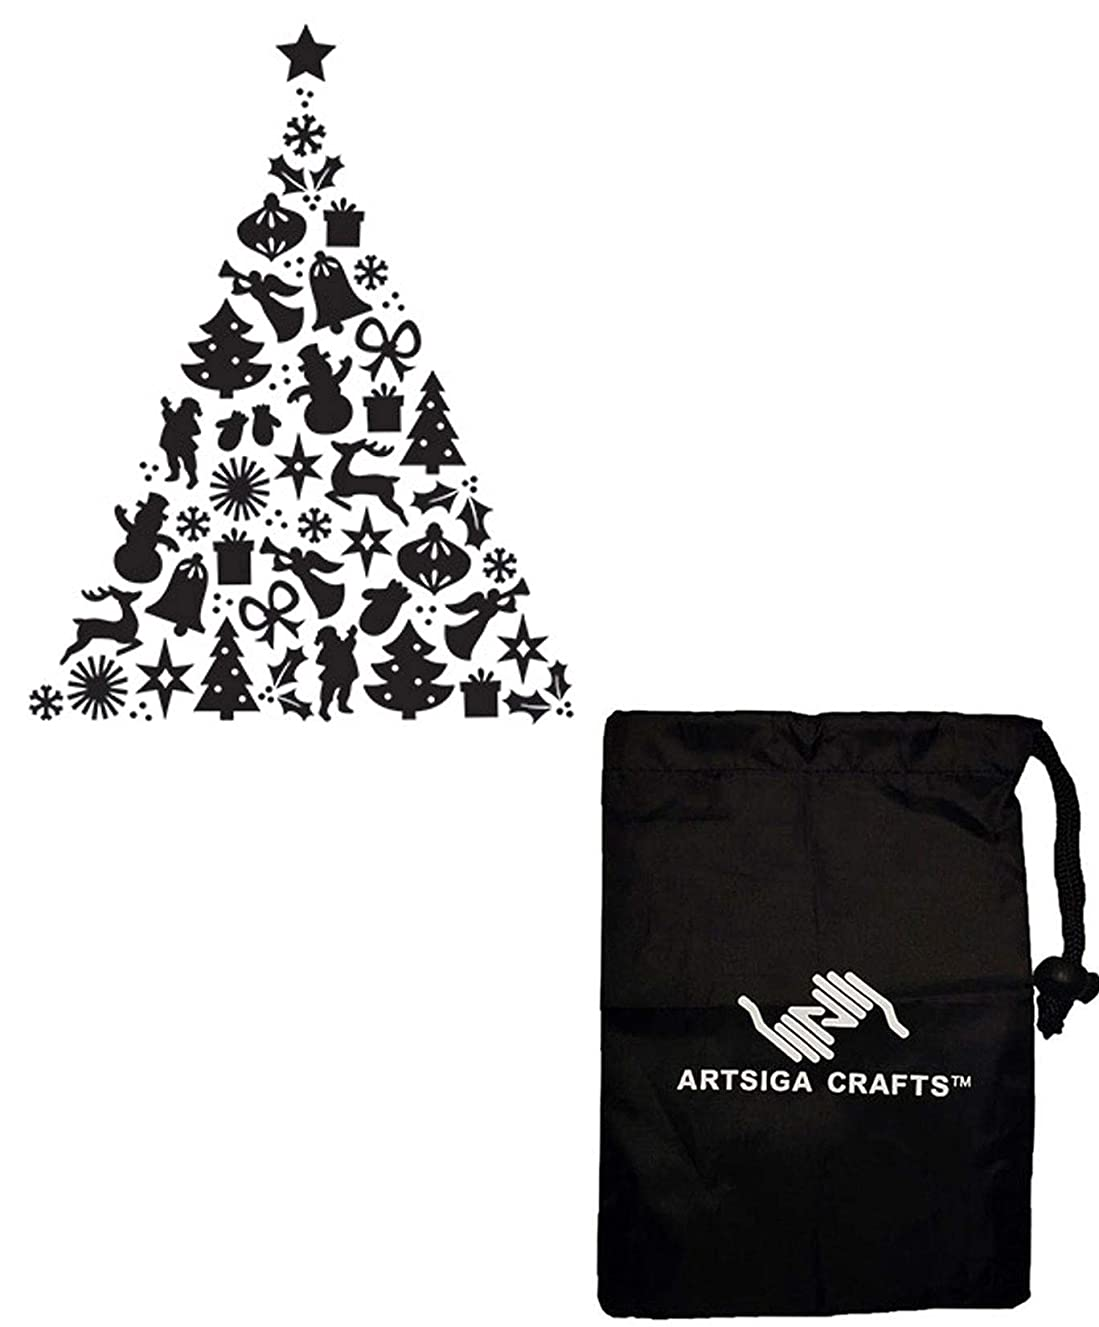 Darice Embossing Folders for Card Making Pattern Christmas Tree 4.25 x 5.75 inches 30041350 Bundle with 1 Artsiga Crafts Small Bag